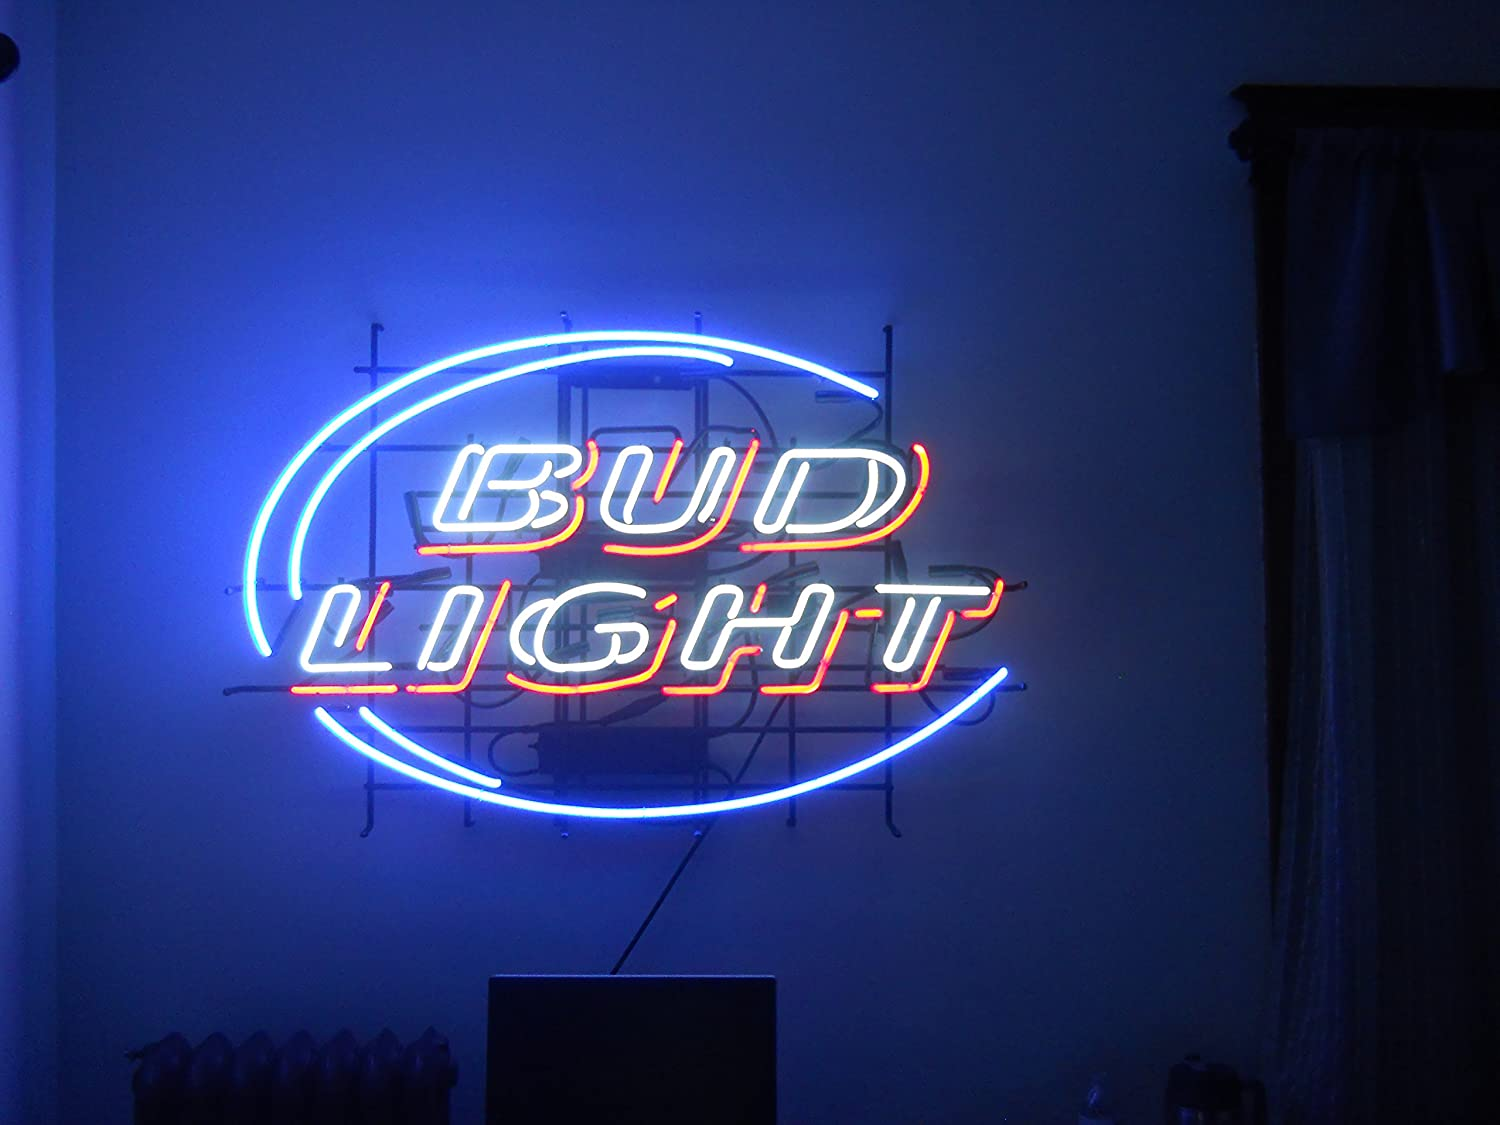 New bud light hand made beer bar pub store garage real glass neon new bud light hand made beer bar pub store garage real glass neon light sign amazon aloadofball Image collections